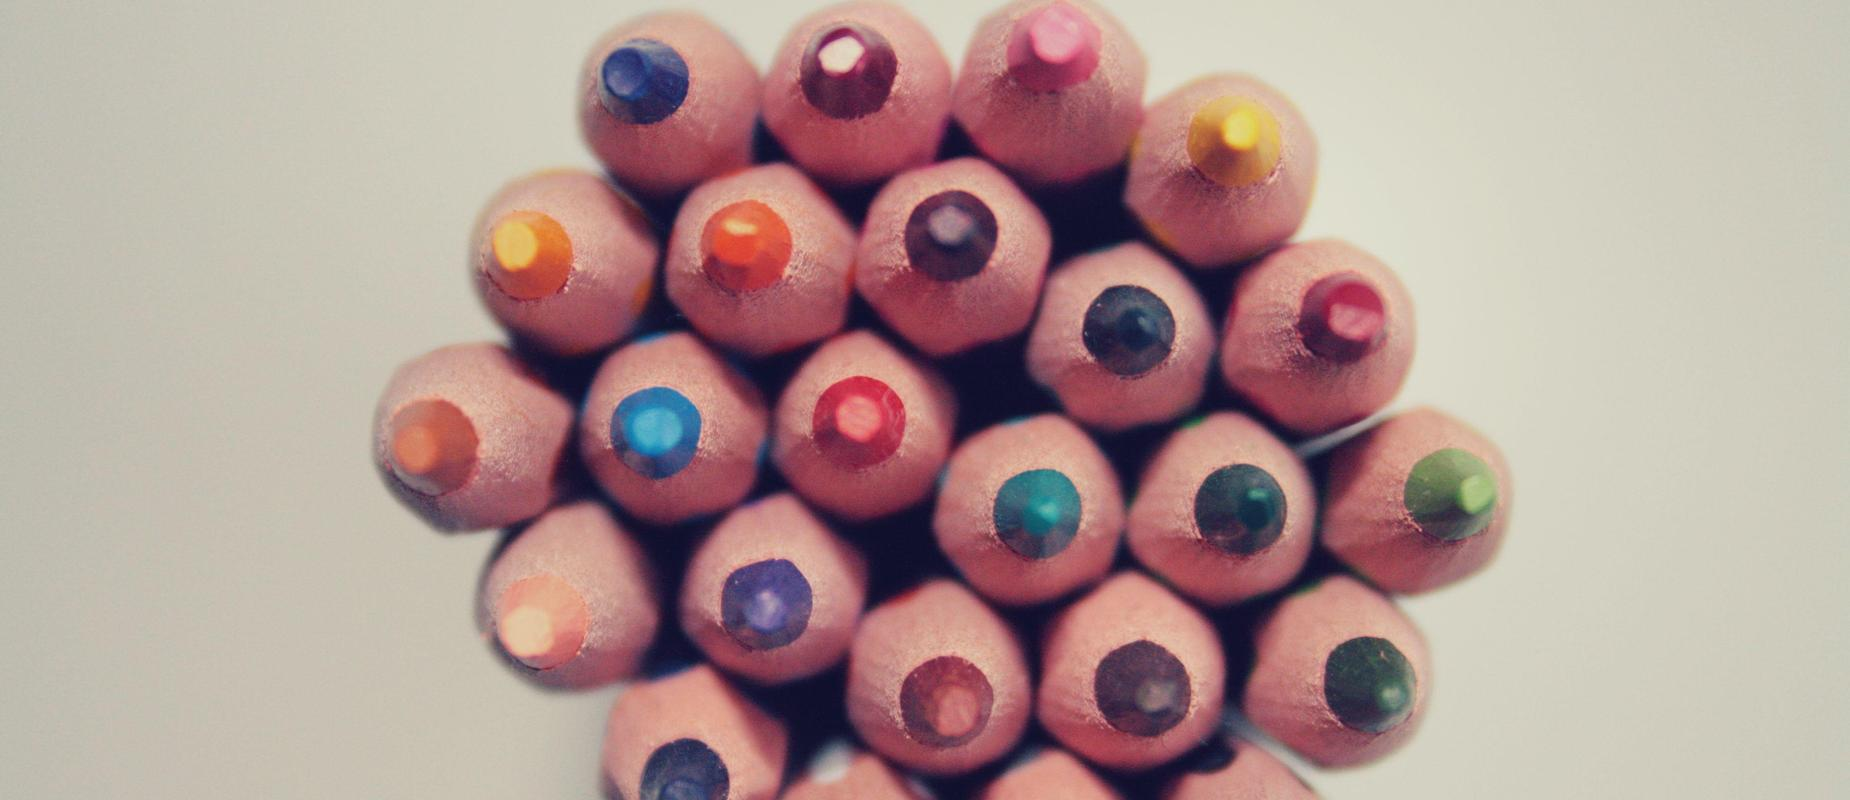 Group of multicolored pencils.